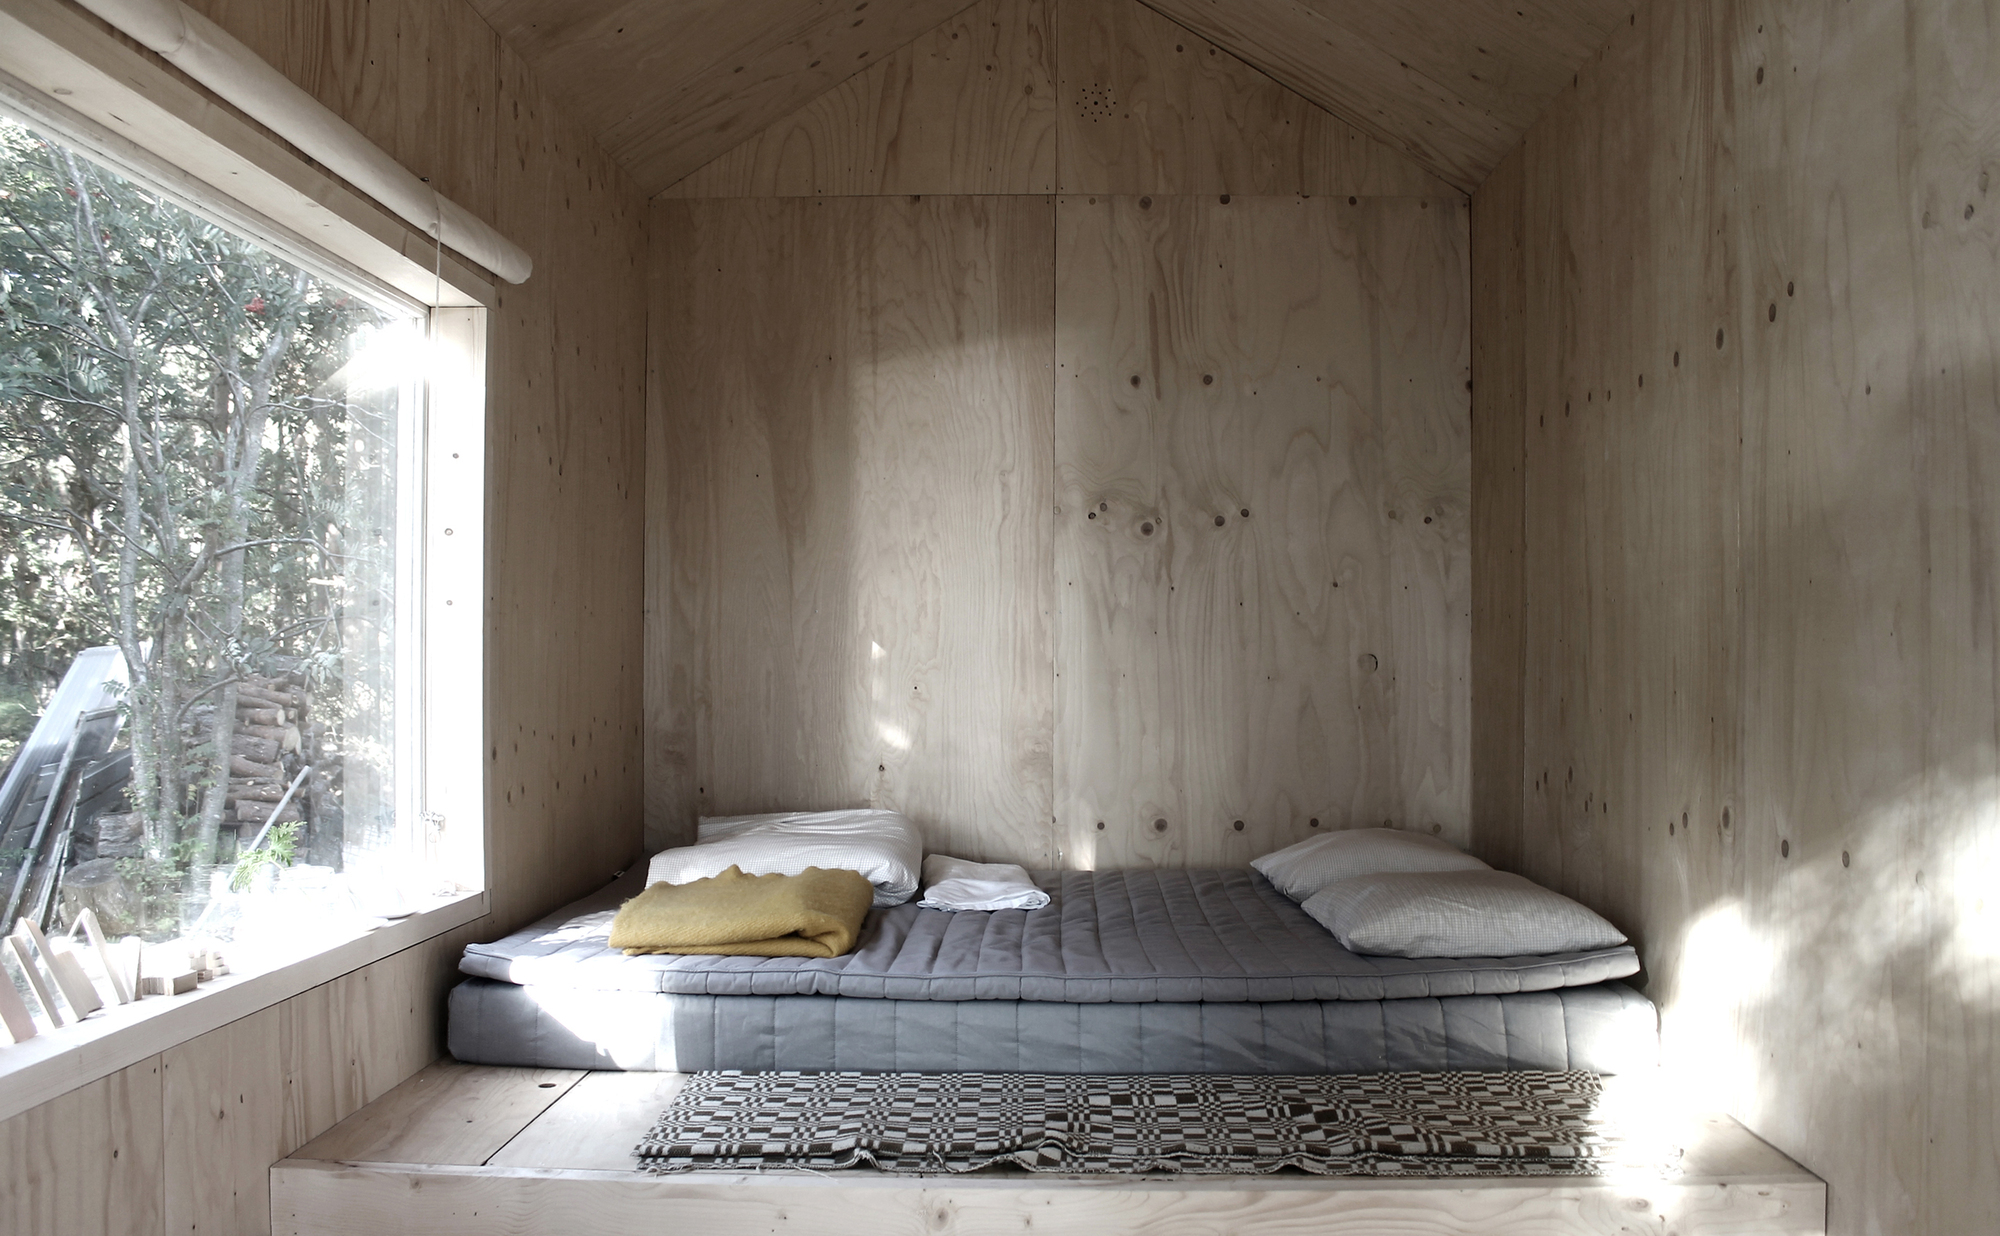 Small Cabin in the woods of Trossö, Sweden, by Septembre Architecture